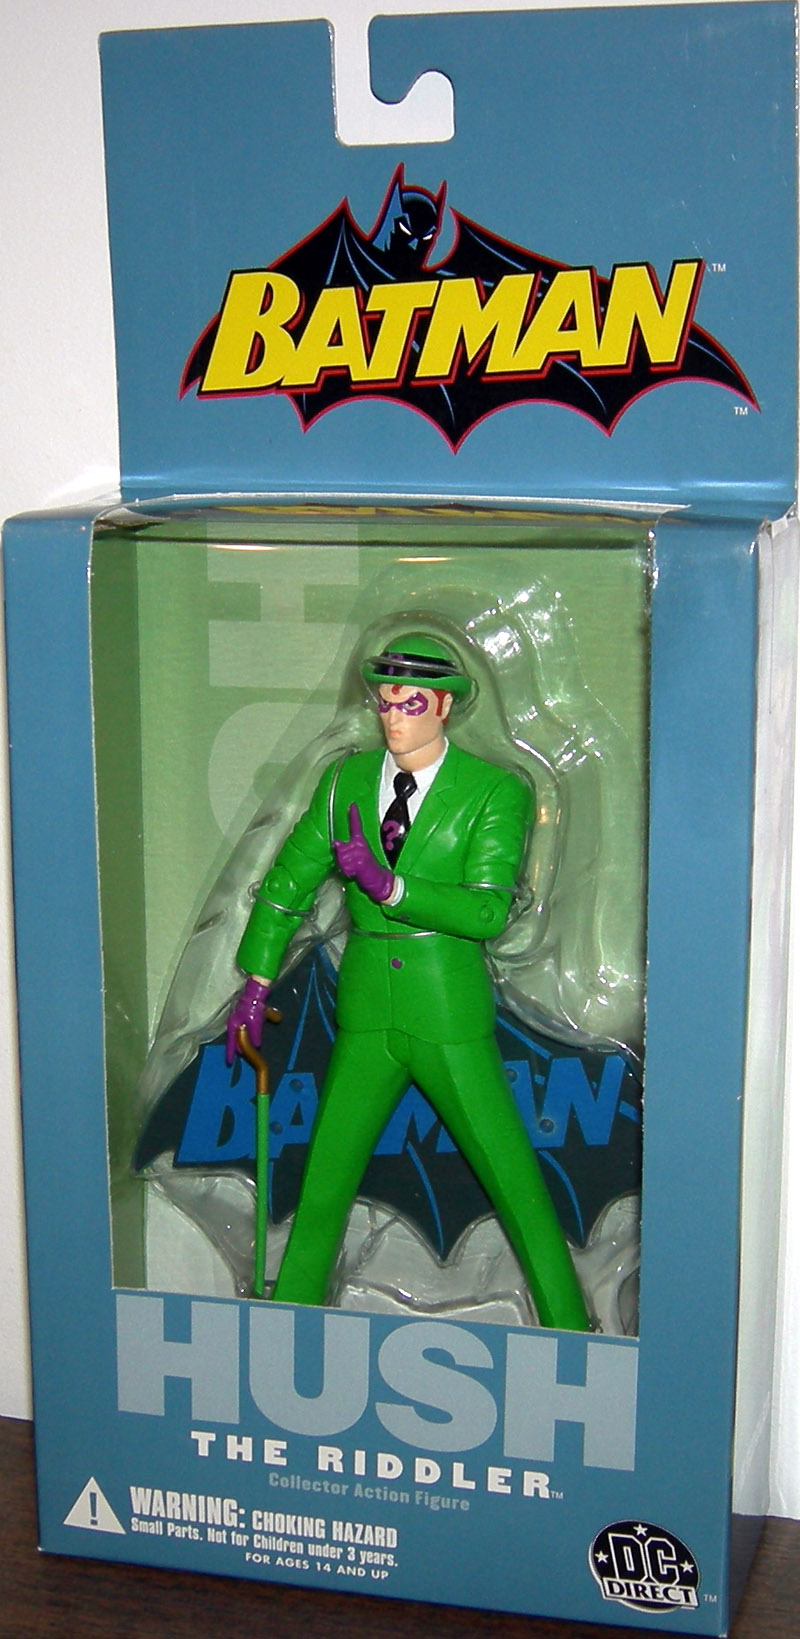 The Riddler (Hush)